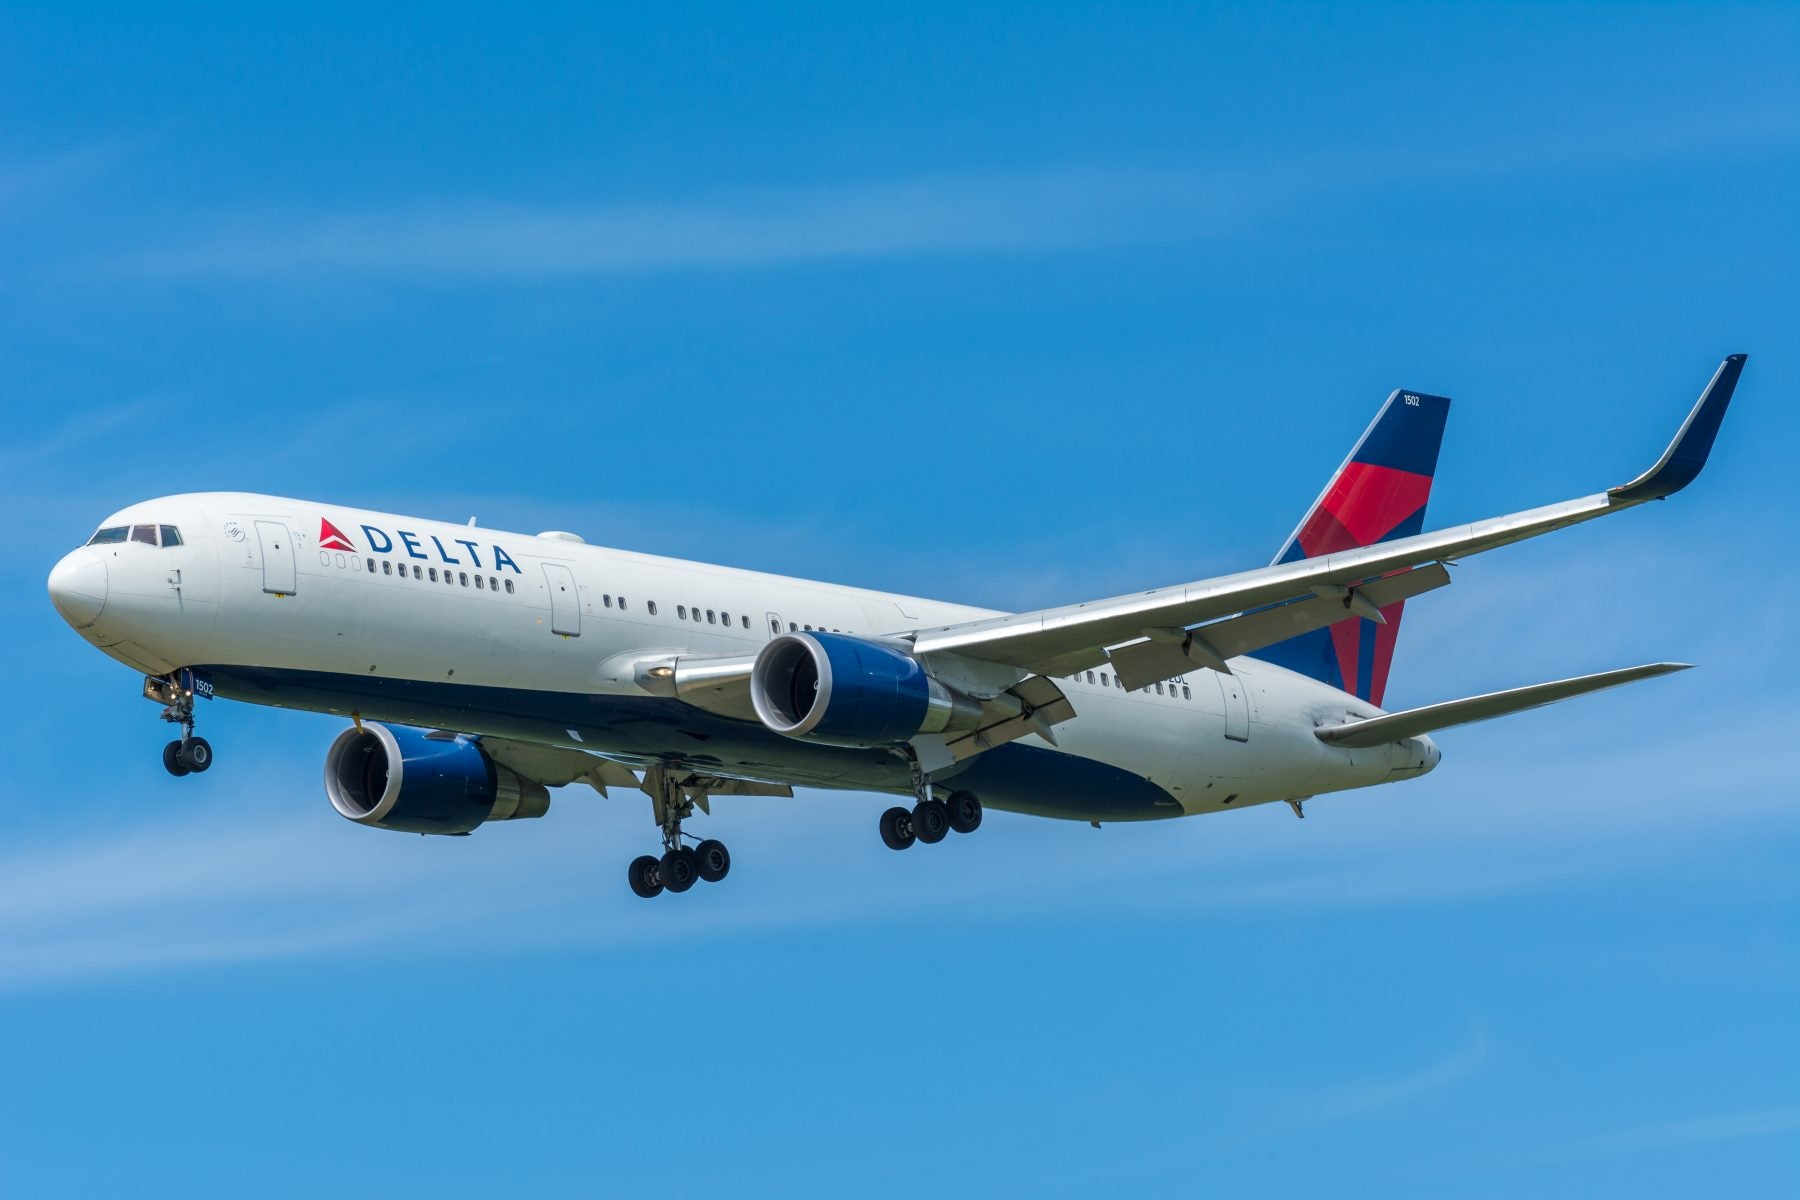 Should you earn Delta status? Here's what you get with each Delta Medallion tier